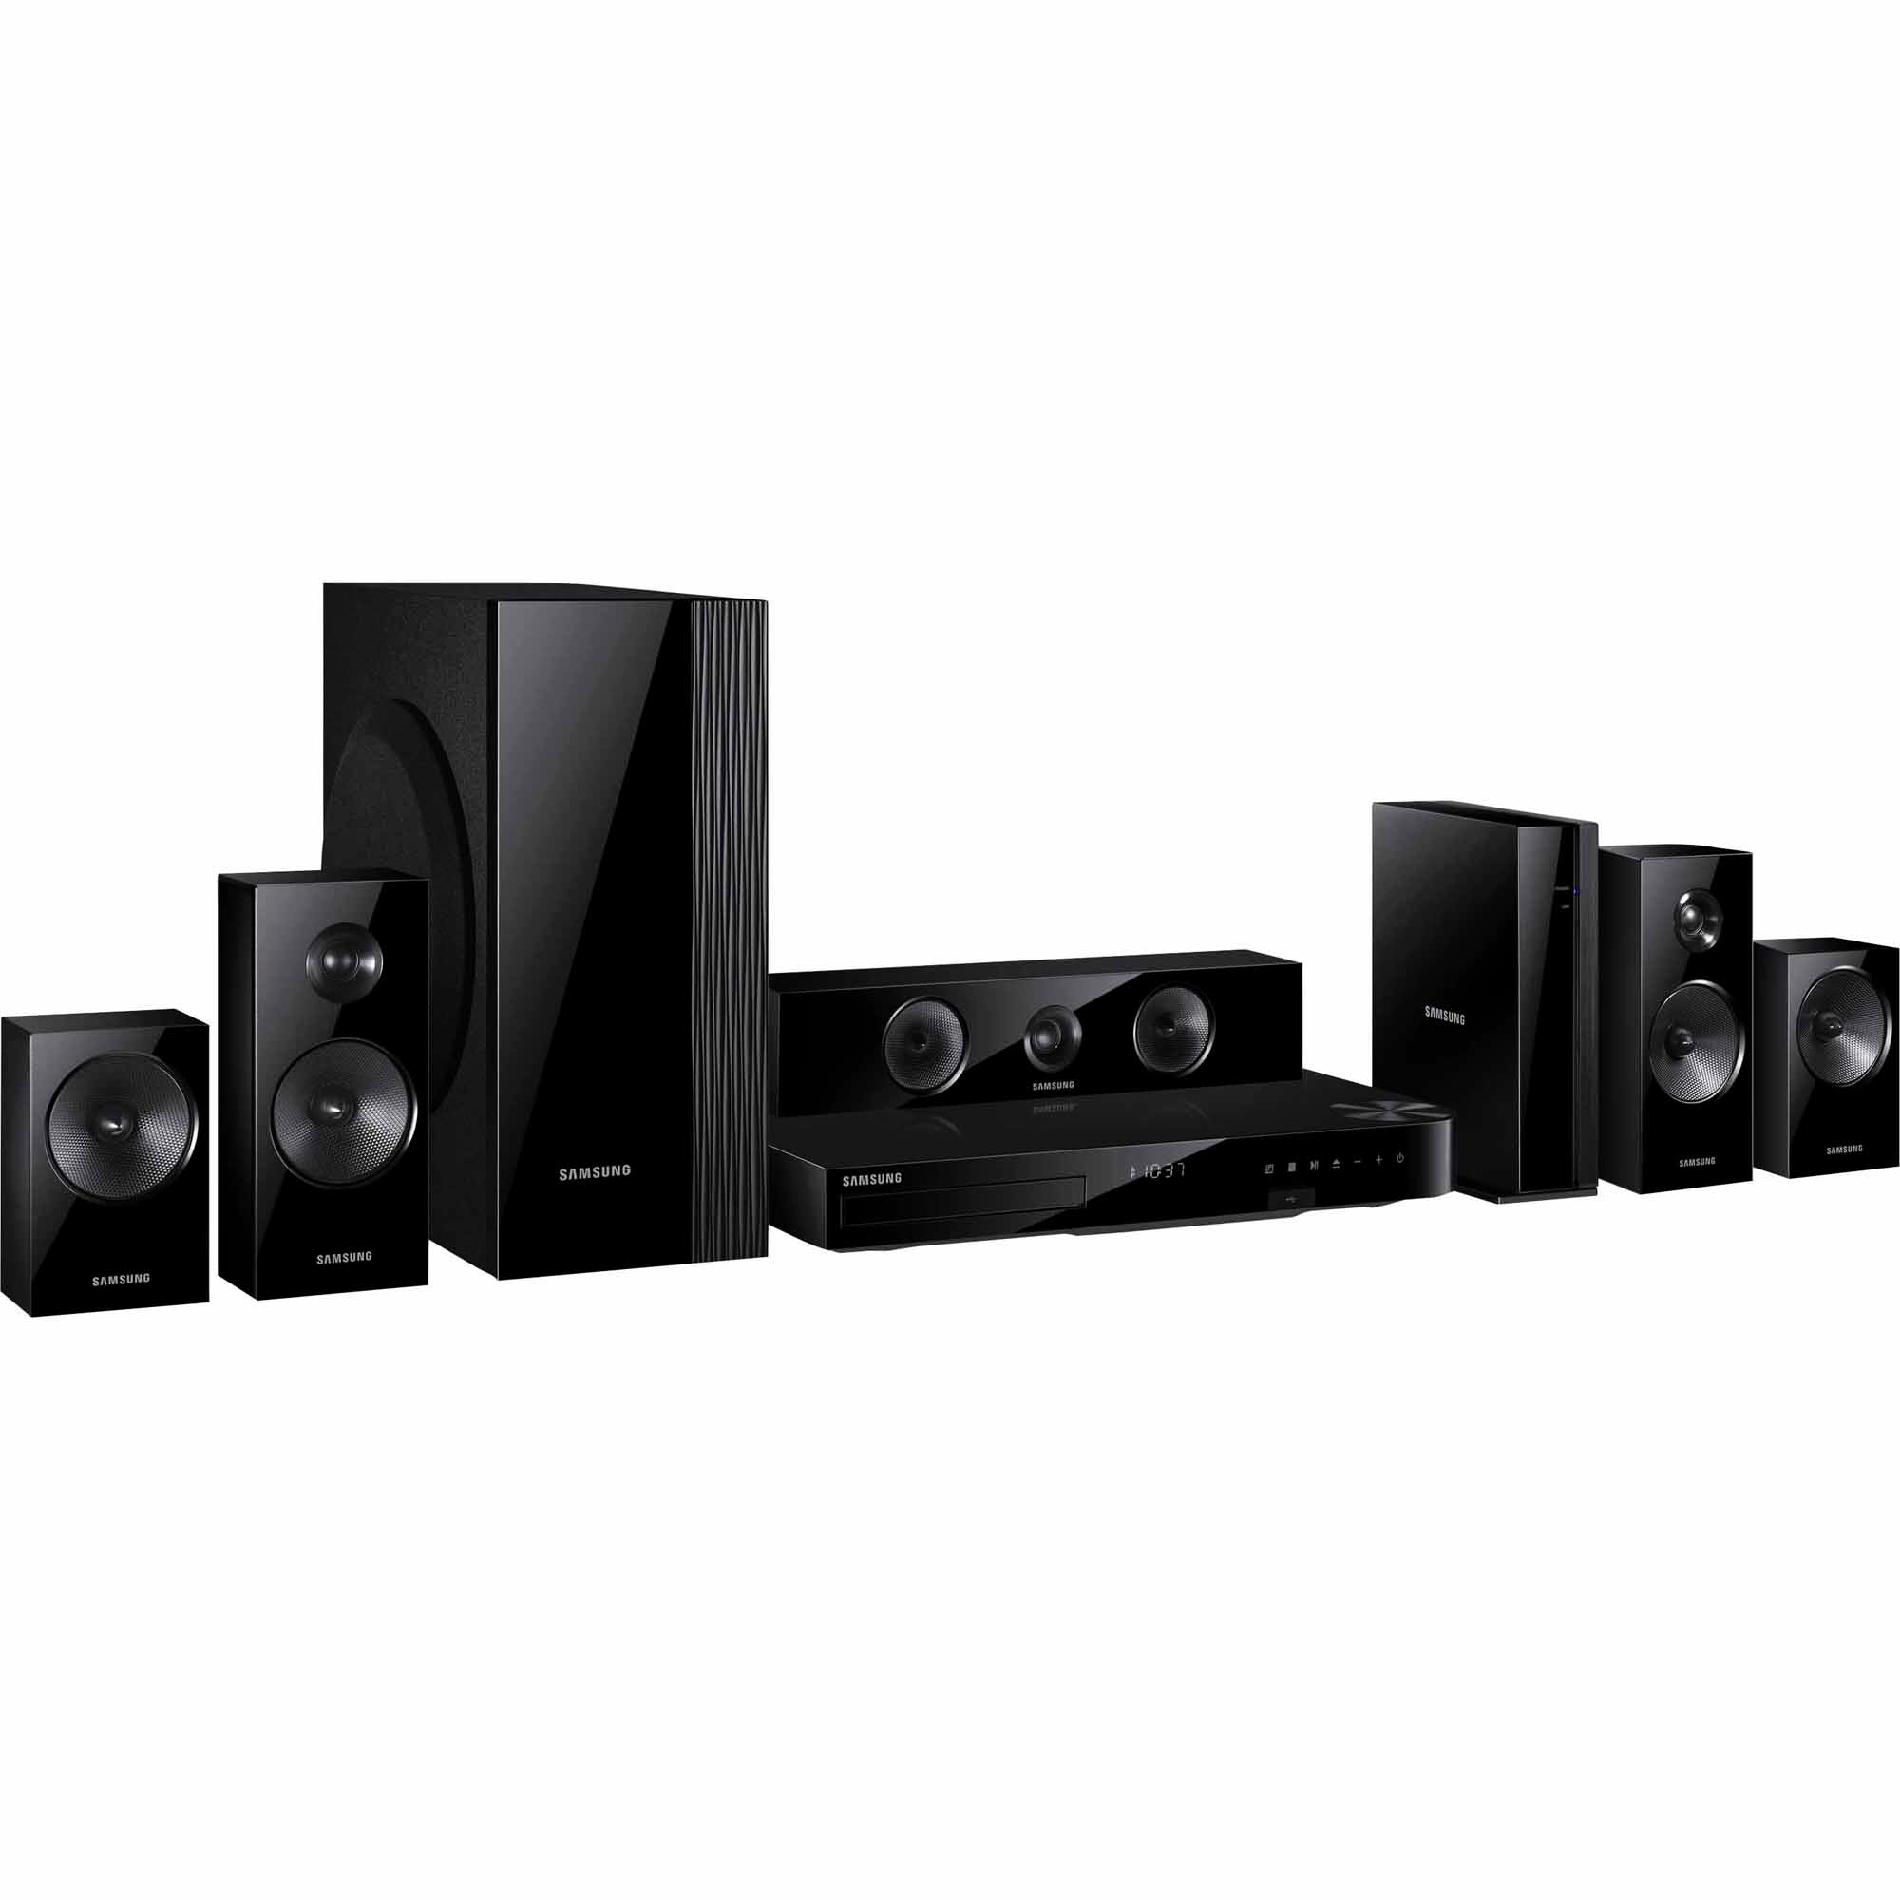 Samsung 5.1 Channel 1000W Home Theater System with 3D Blu-ray and Wi-Fi - HT-F5500W